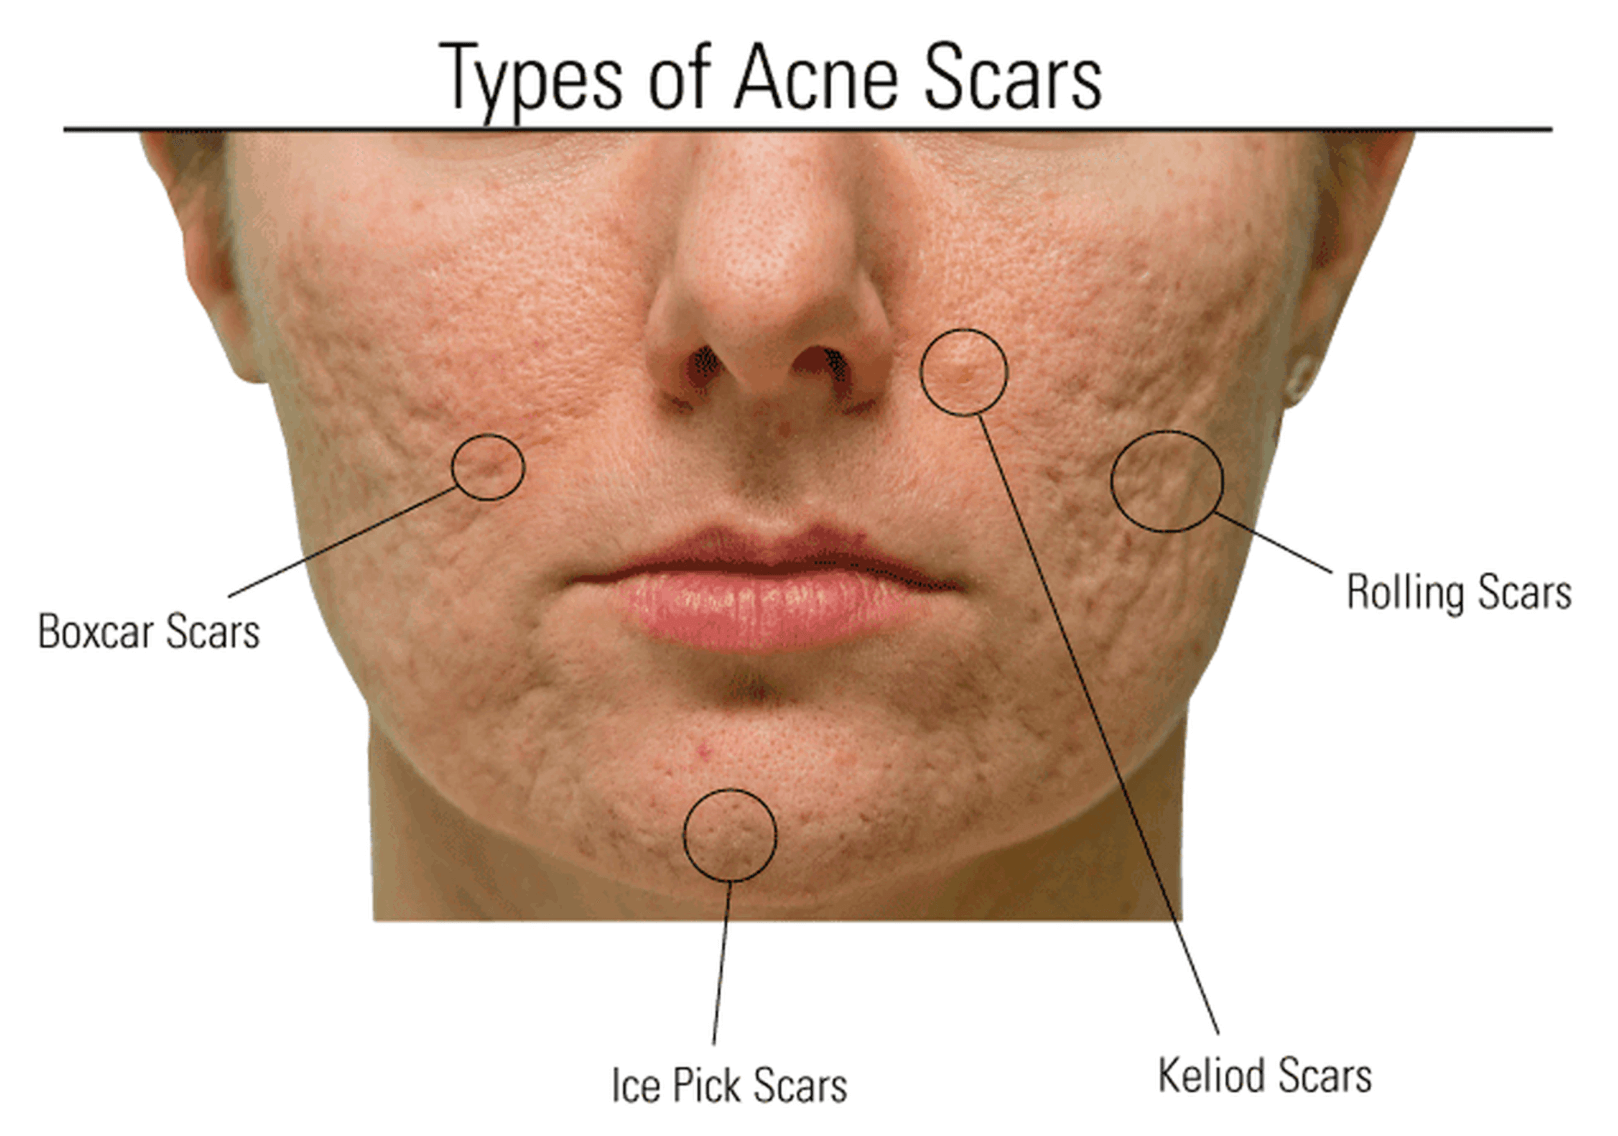 A person with all 4 types of acne scars on their face